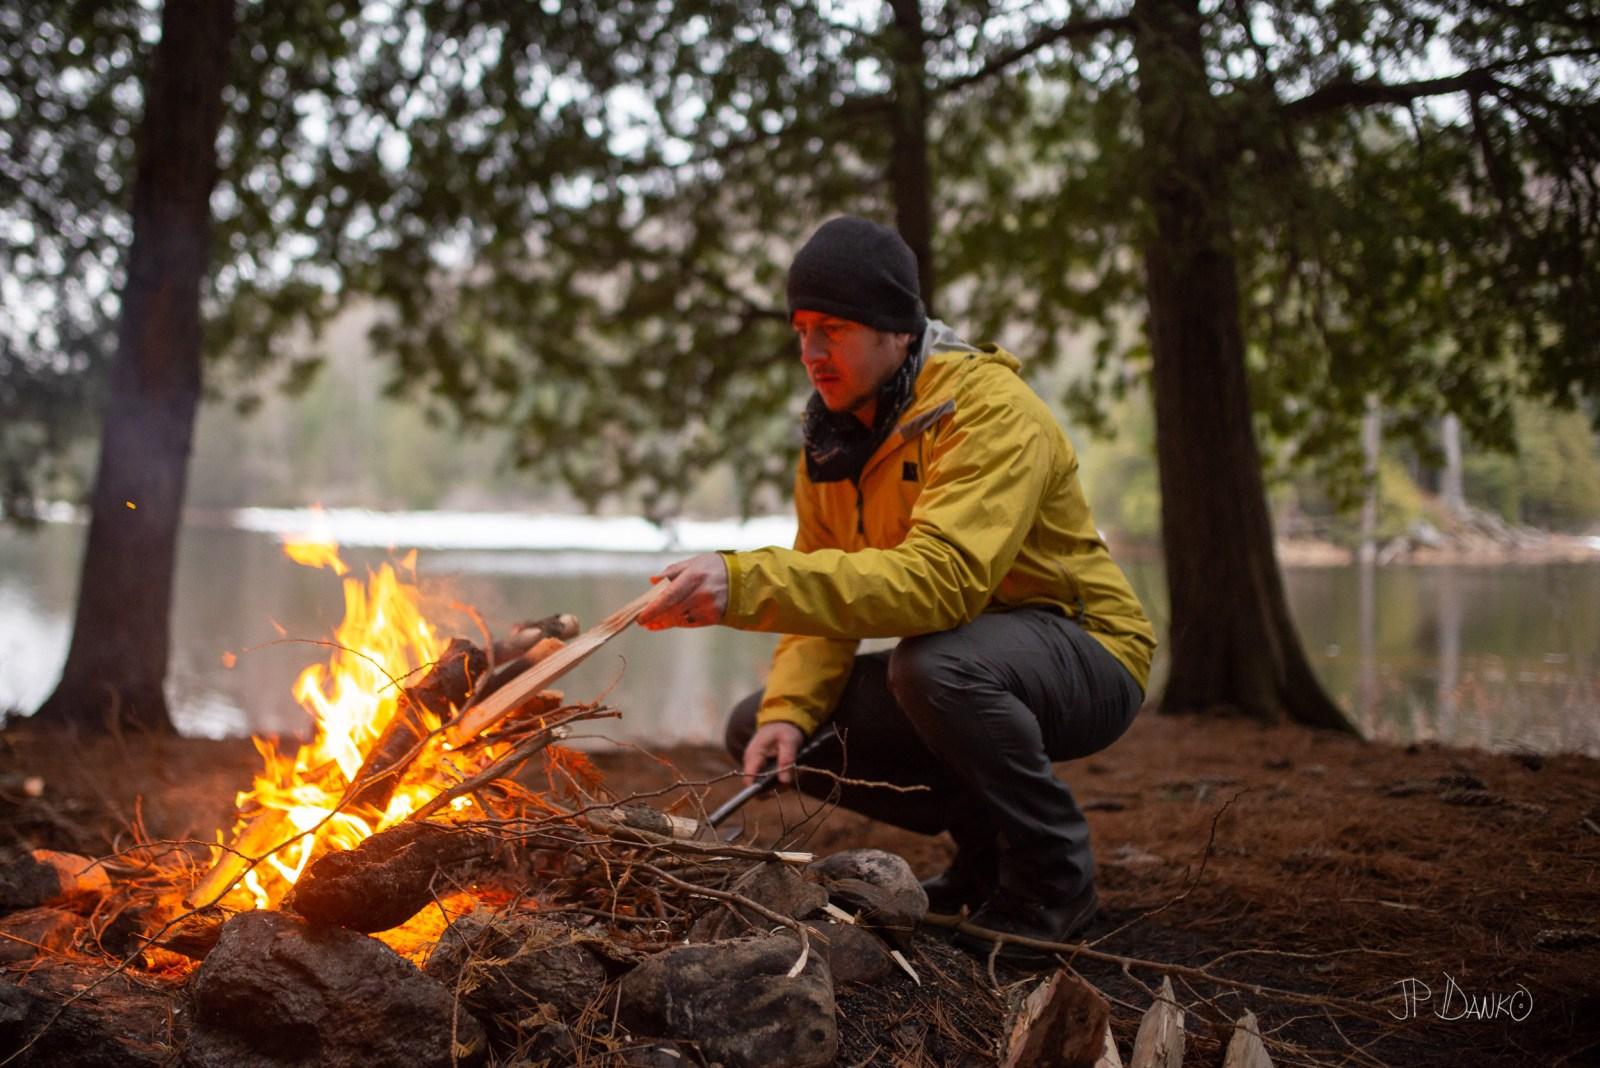 Man Campfire Spring Canoe Trip Backcountry Wilderness Camping